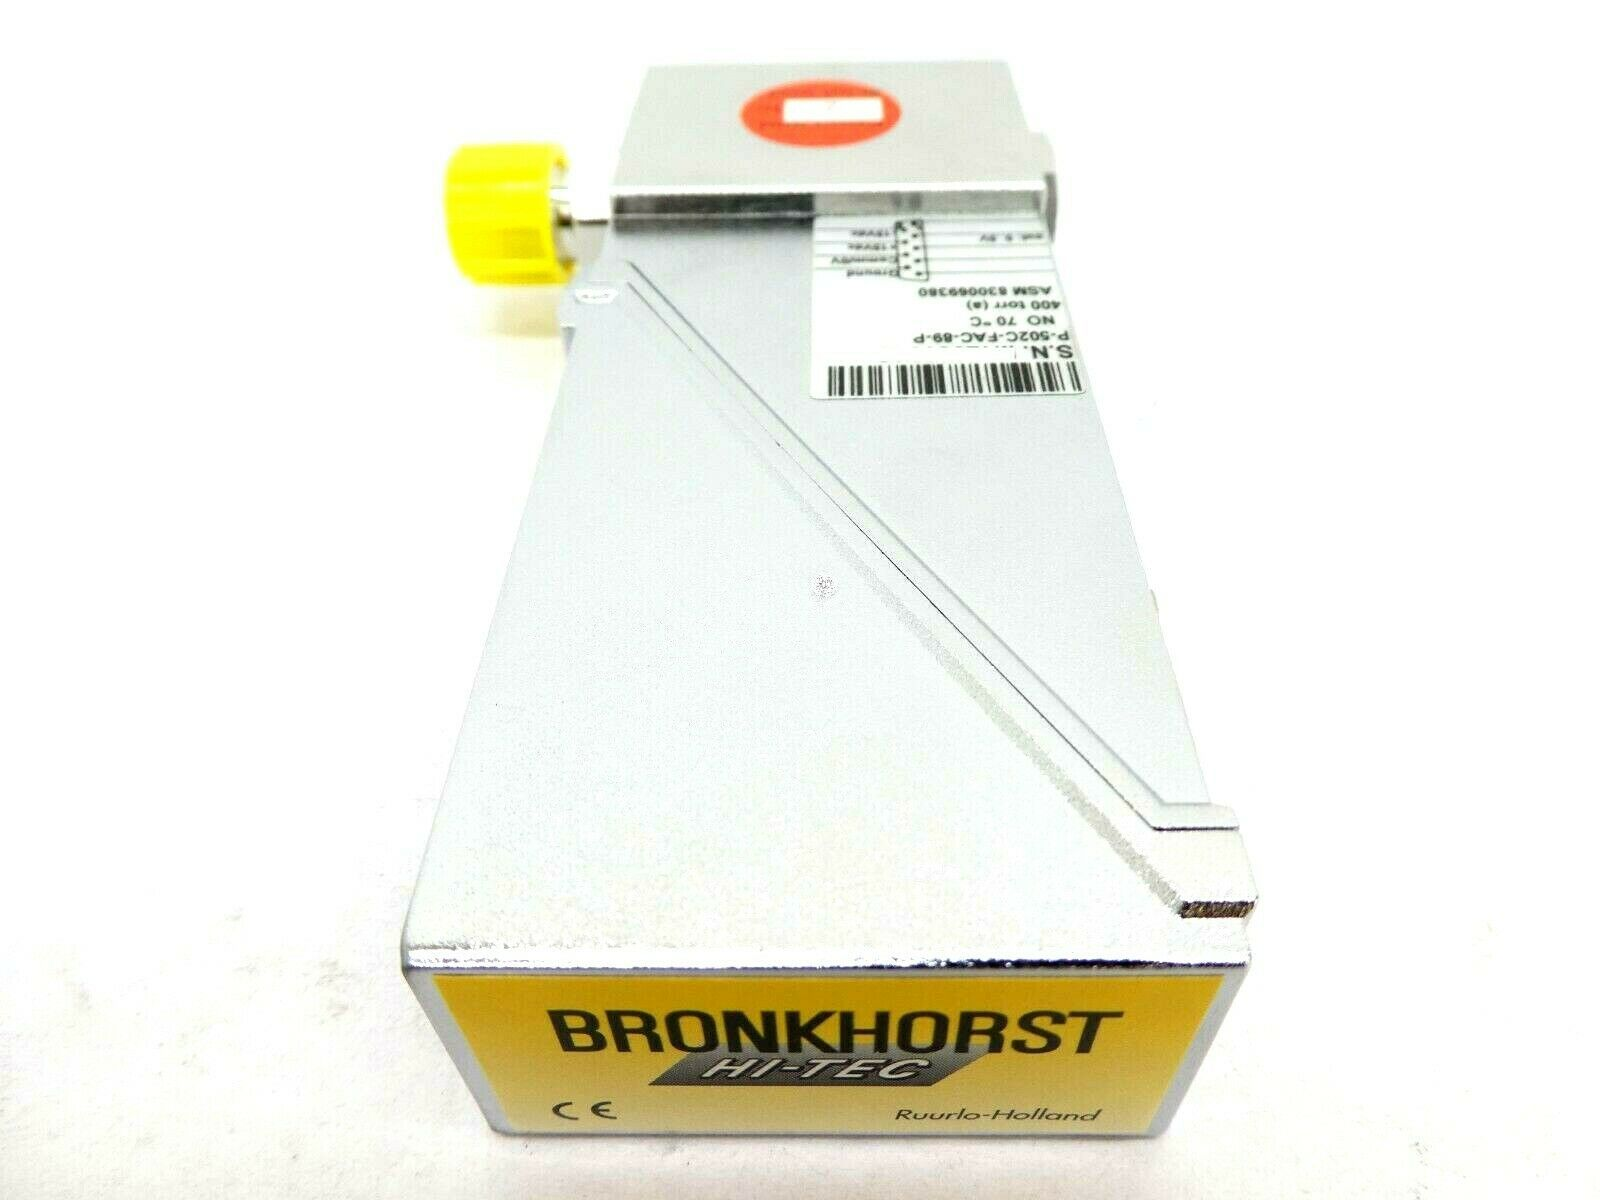 Bronkhorst P-502C-FAC-89-P Pressure Controller NO EL-PRESS ASM 830069380 New